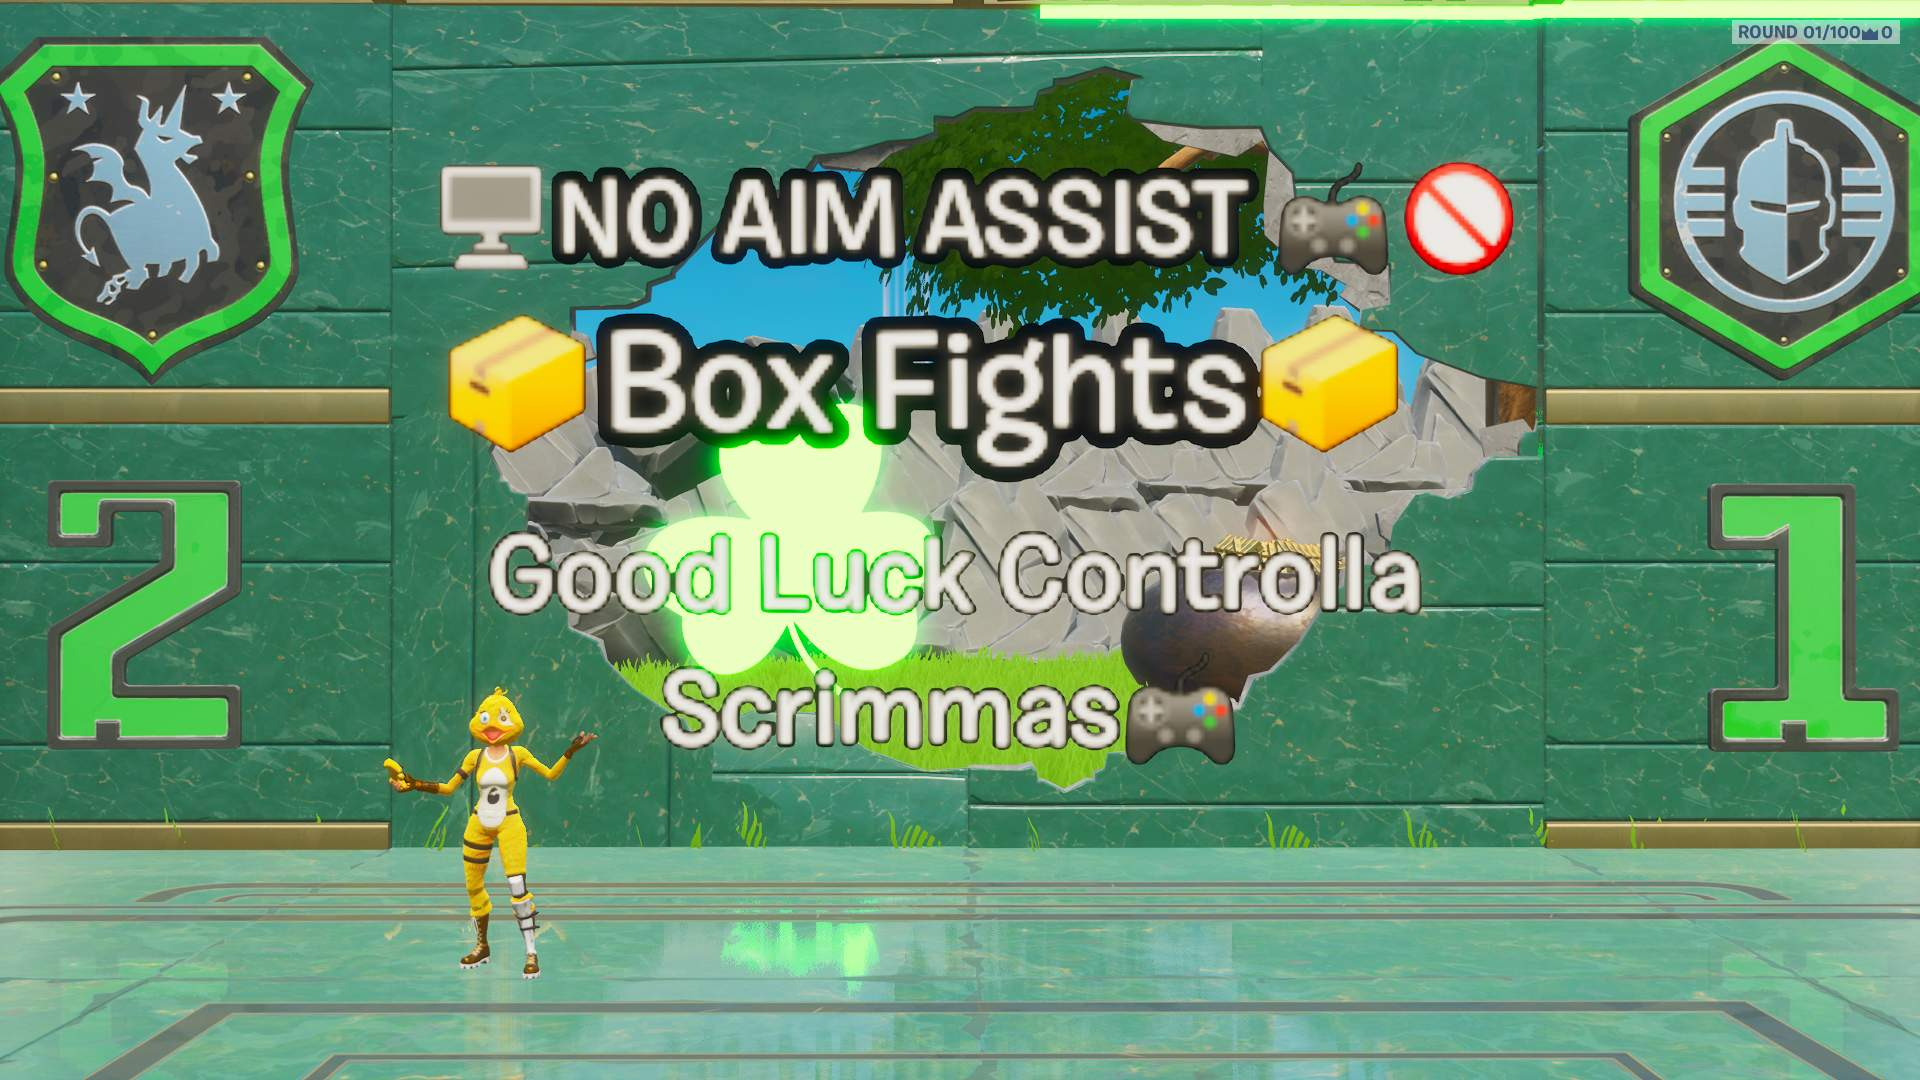 🚫🎮NO AIM ASSIST BOXFIGHTS🎮🚫